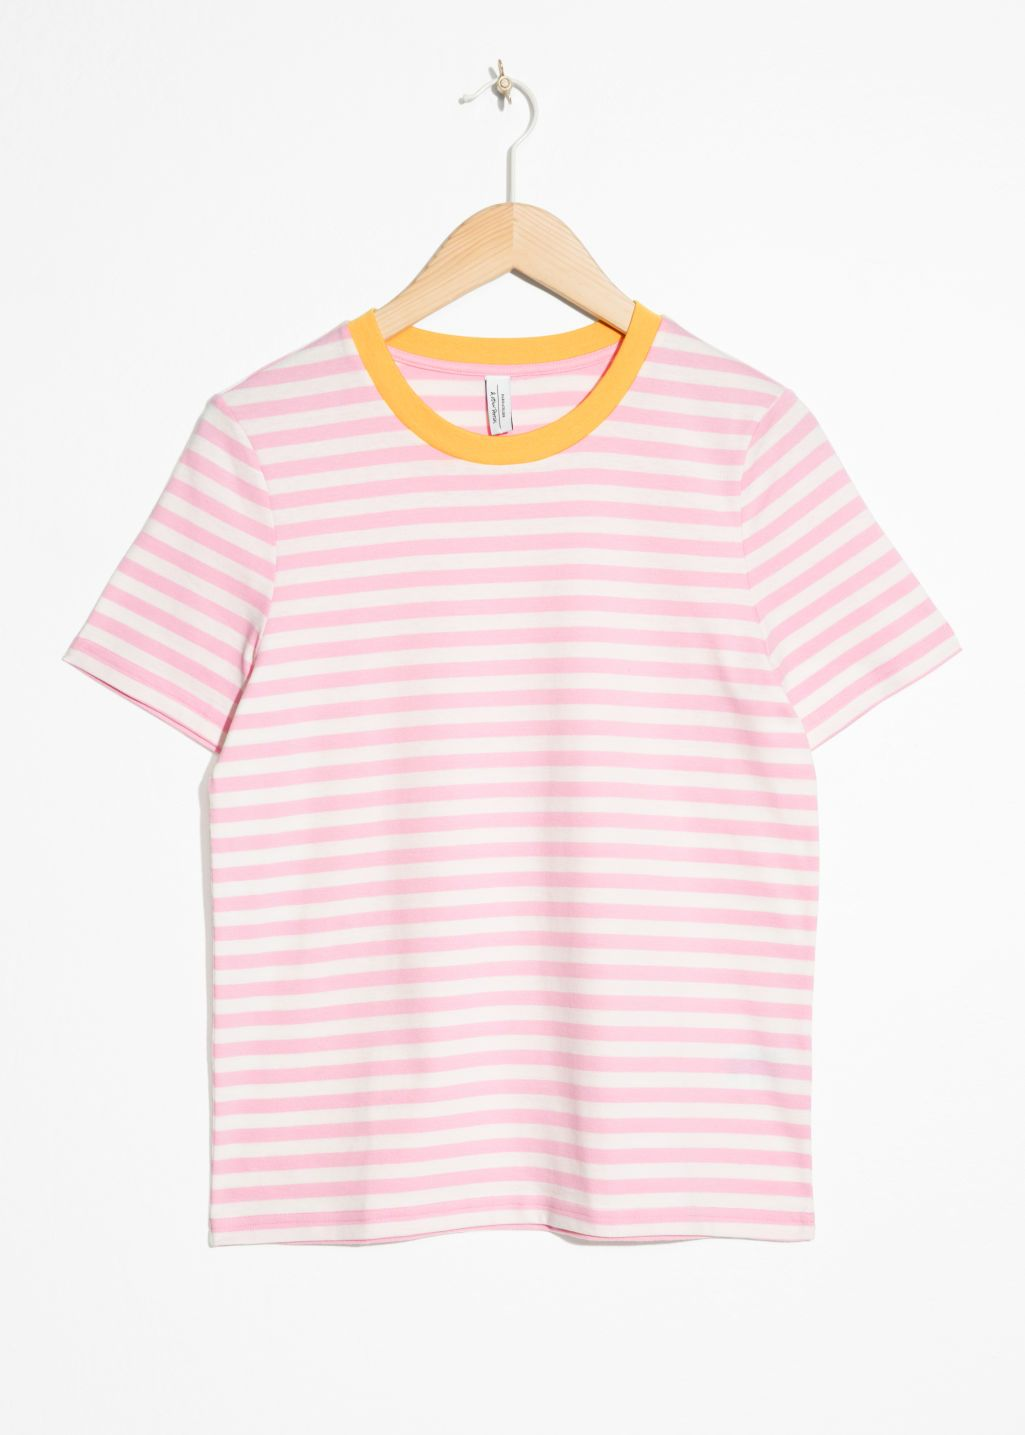 Striped Tee - Pink / Yellow - Tops & T-shirts - & Other Stories